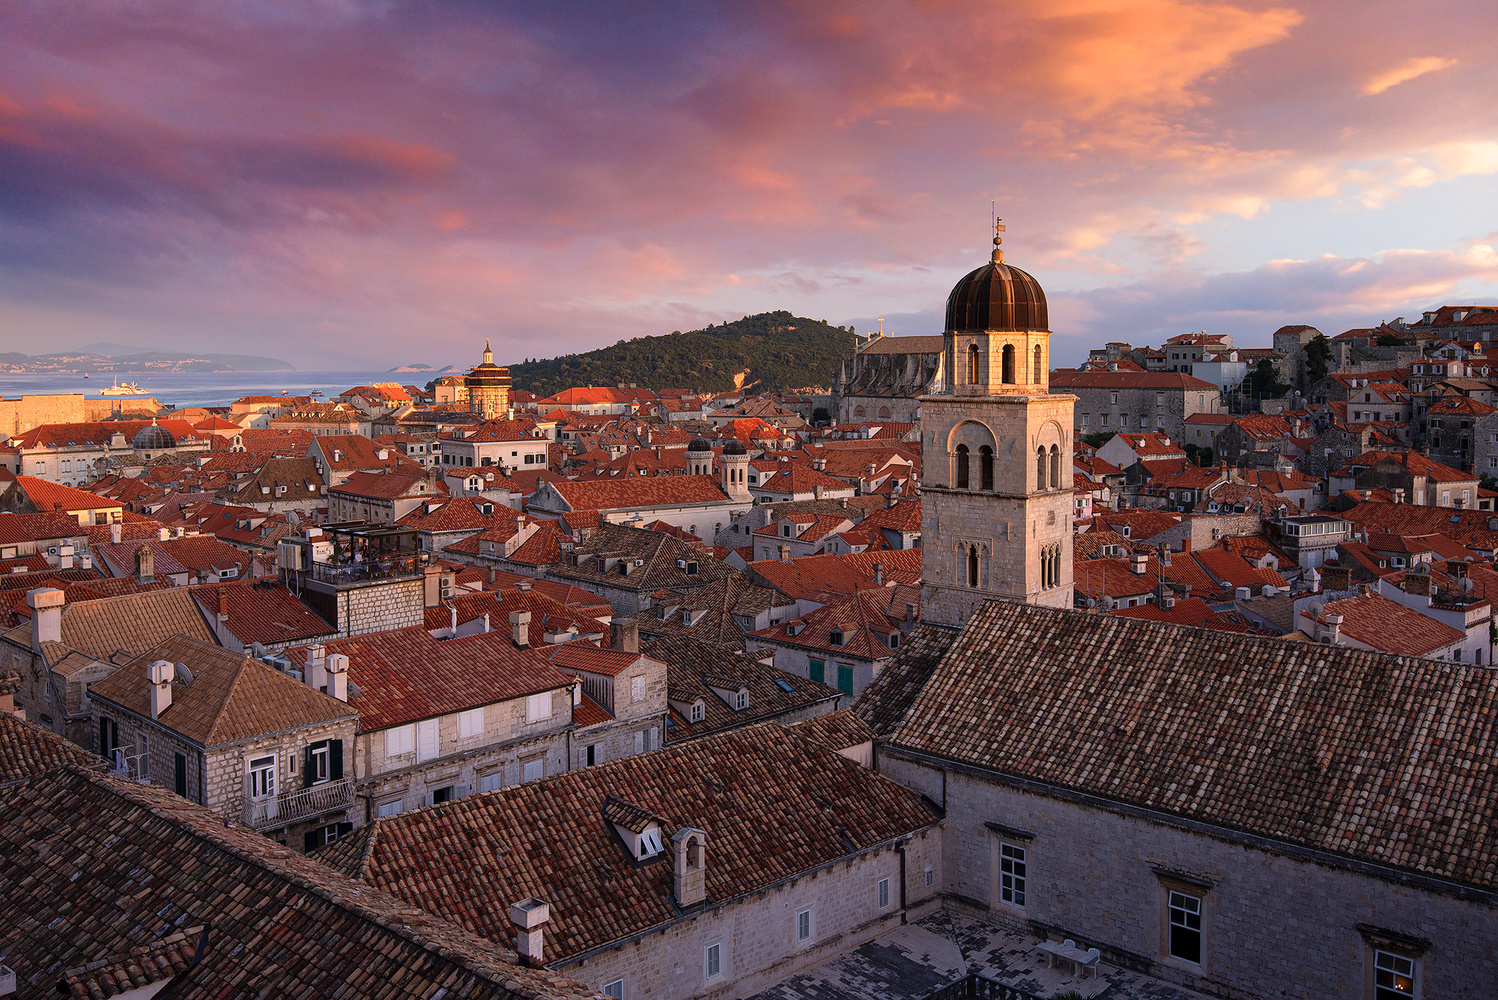 Dusk in Dubrovnik by Donald Yip